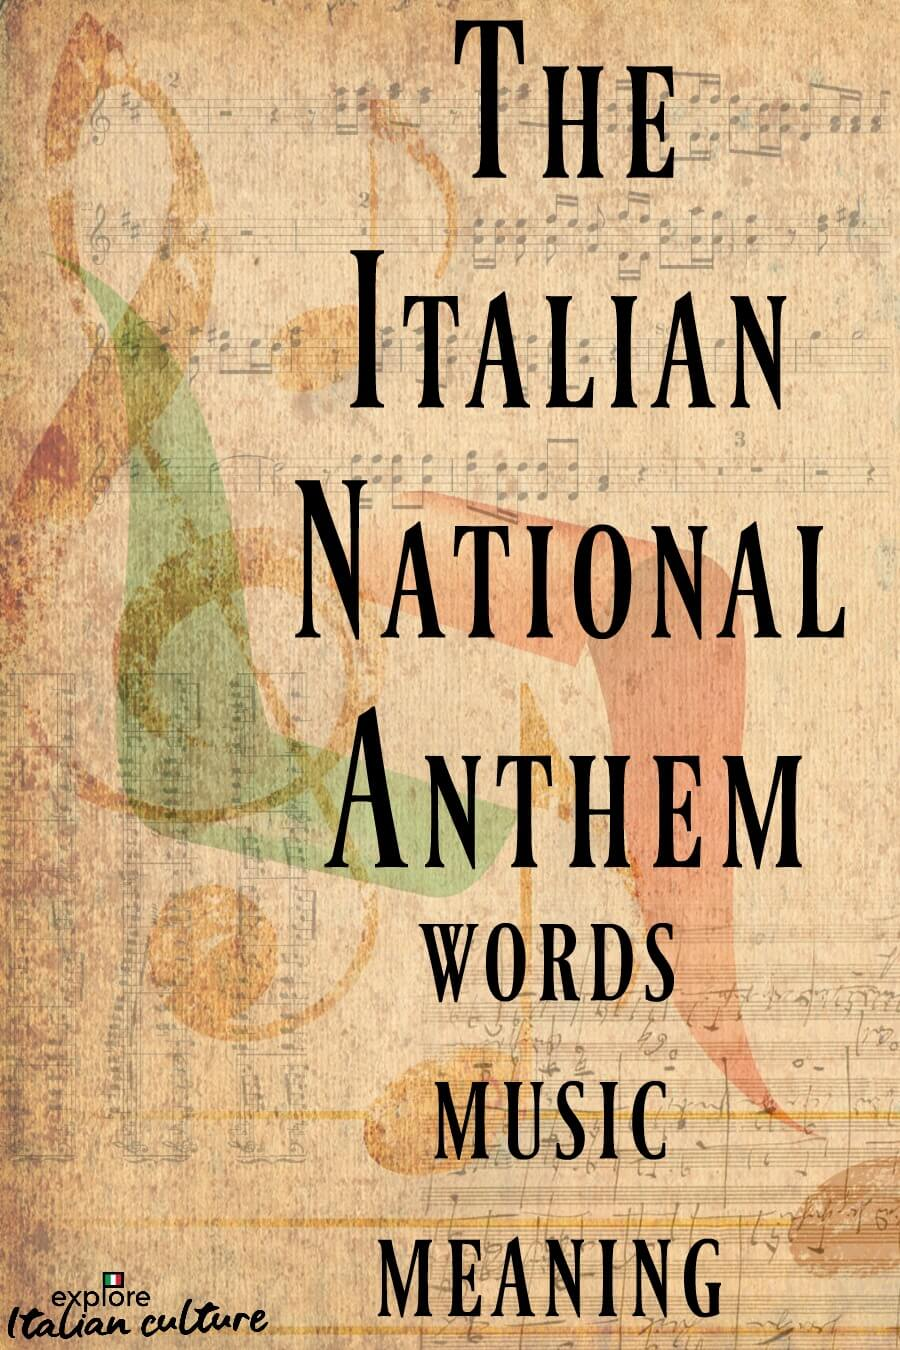 Italian national anthem